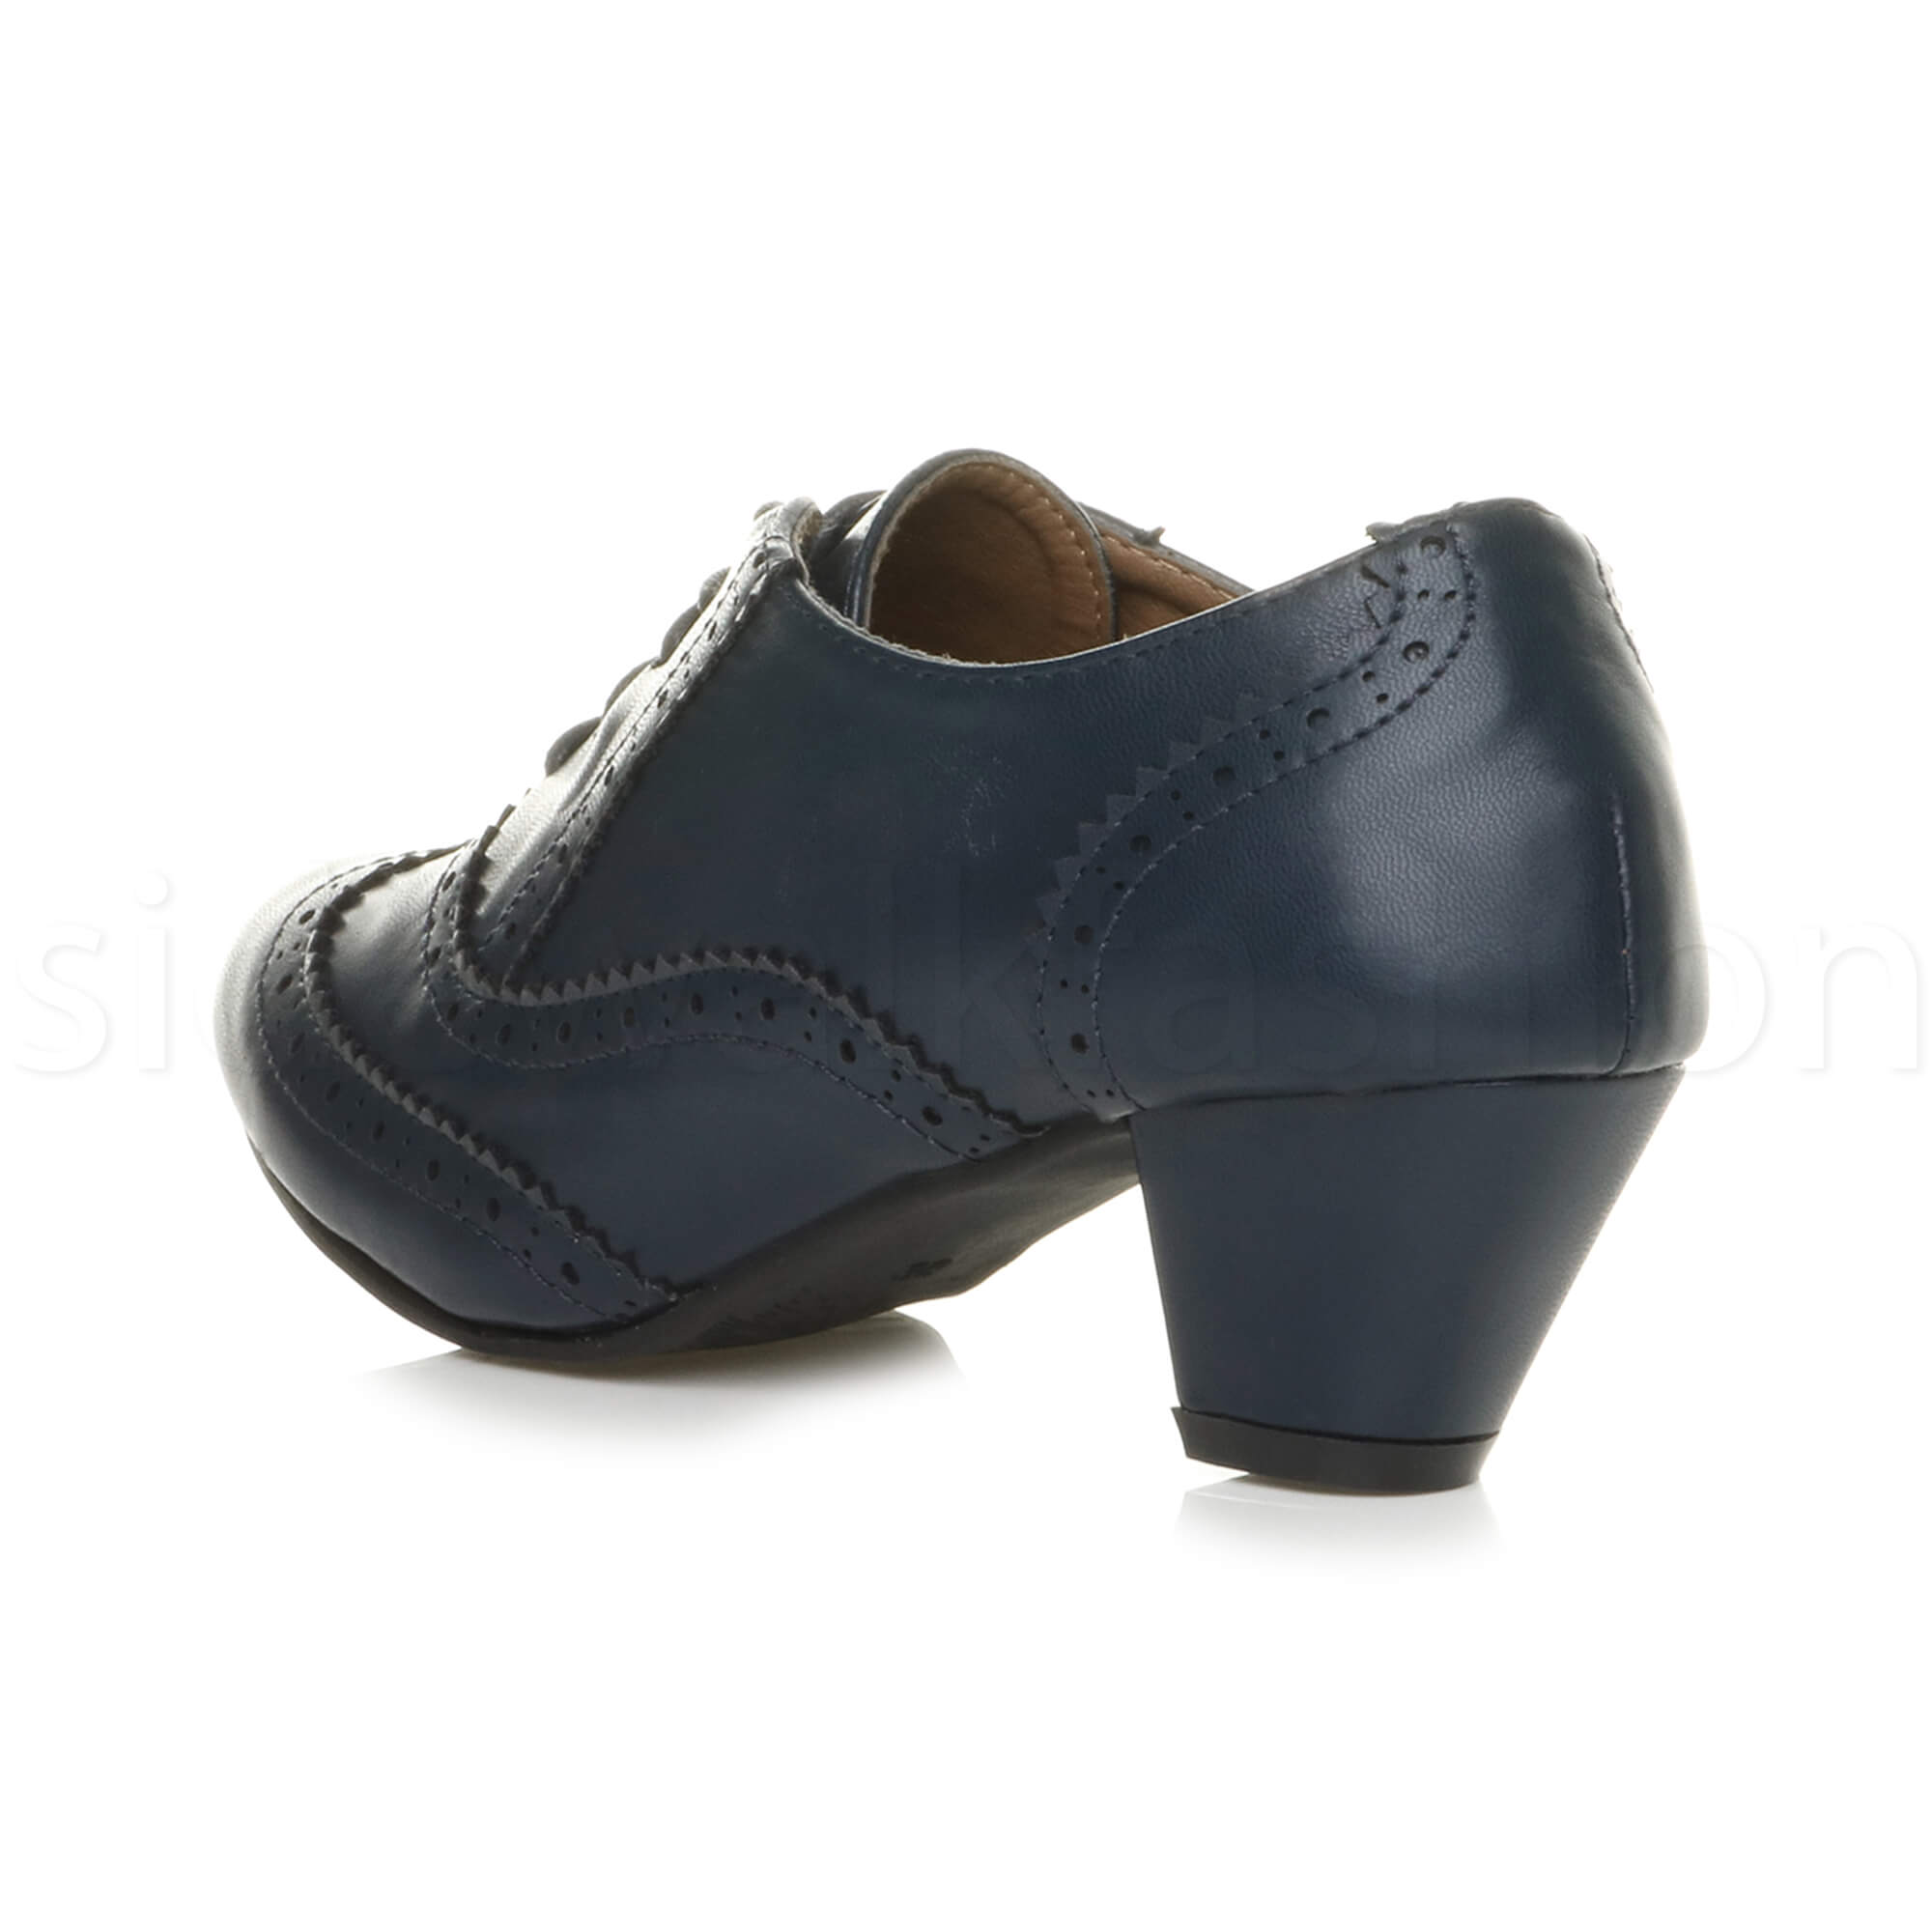 Shop lace up shoes for women at Farfetch and find beautifully crafted leather shoes from Stella McCartney and Church's.